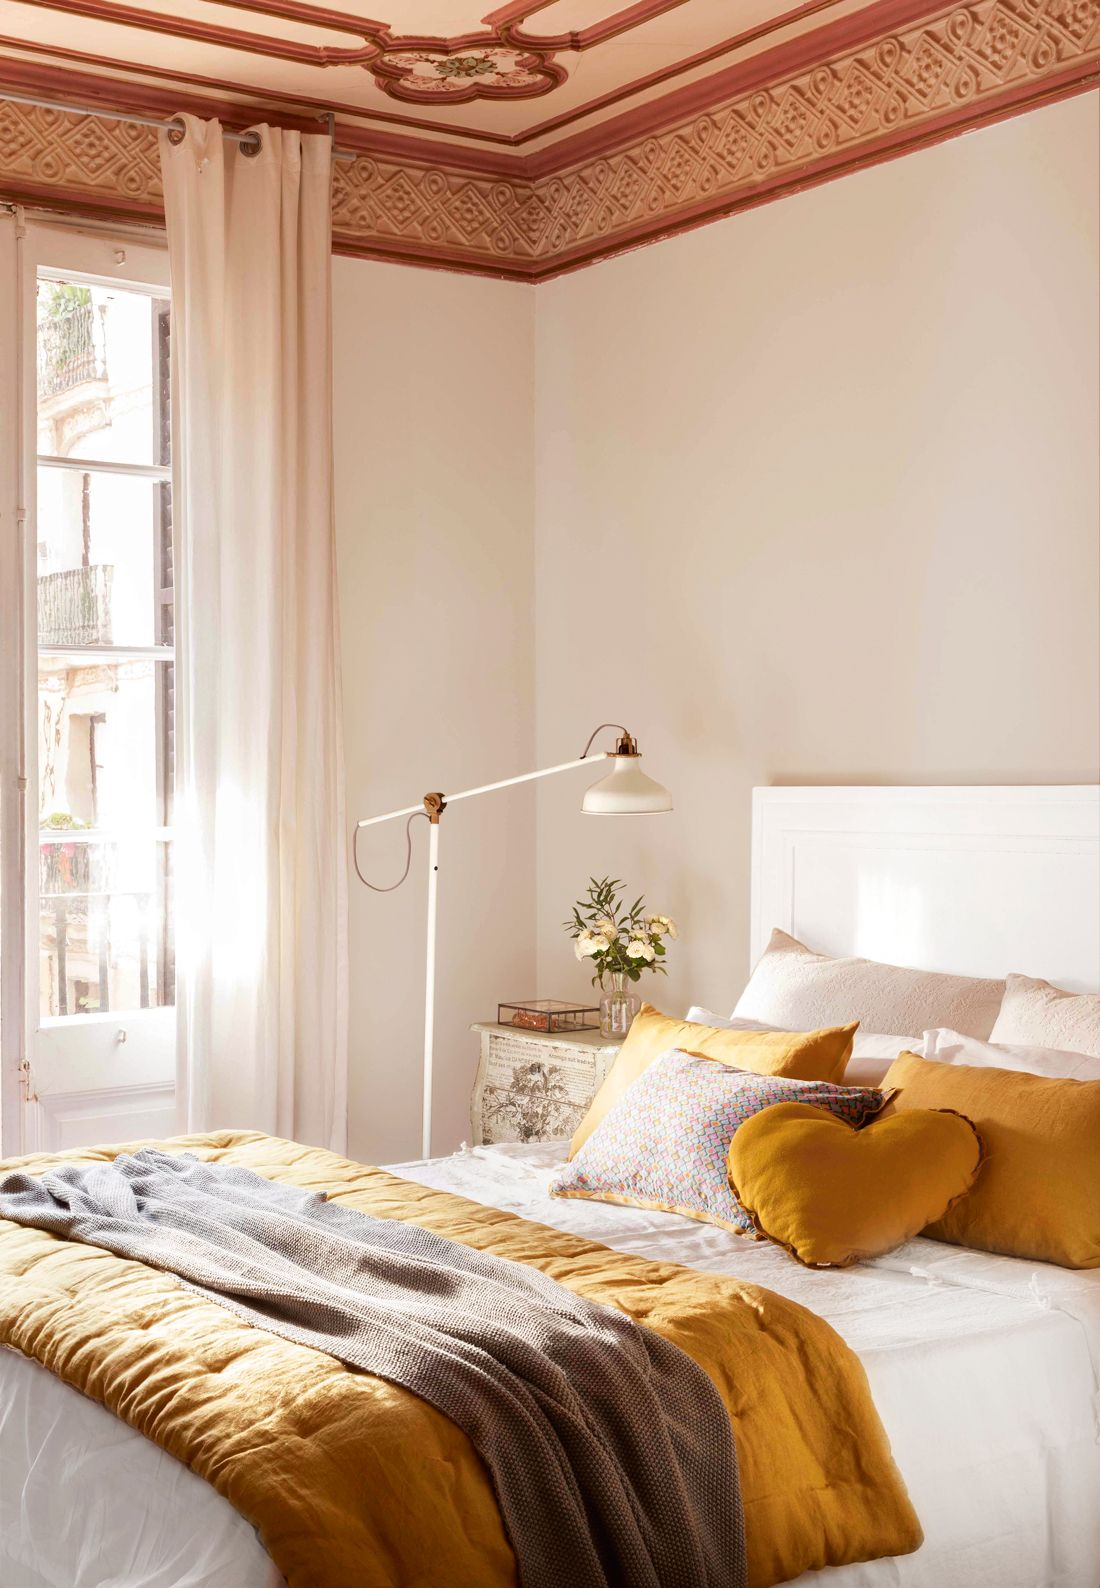 Cabecero De Cojines Terciopelos Que Abrazan In 2019 Hab Bedroom Color Schemes